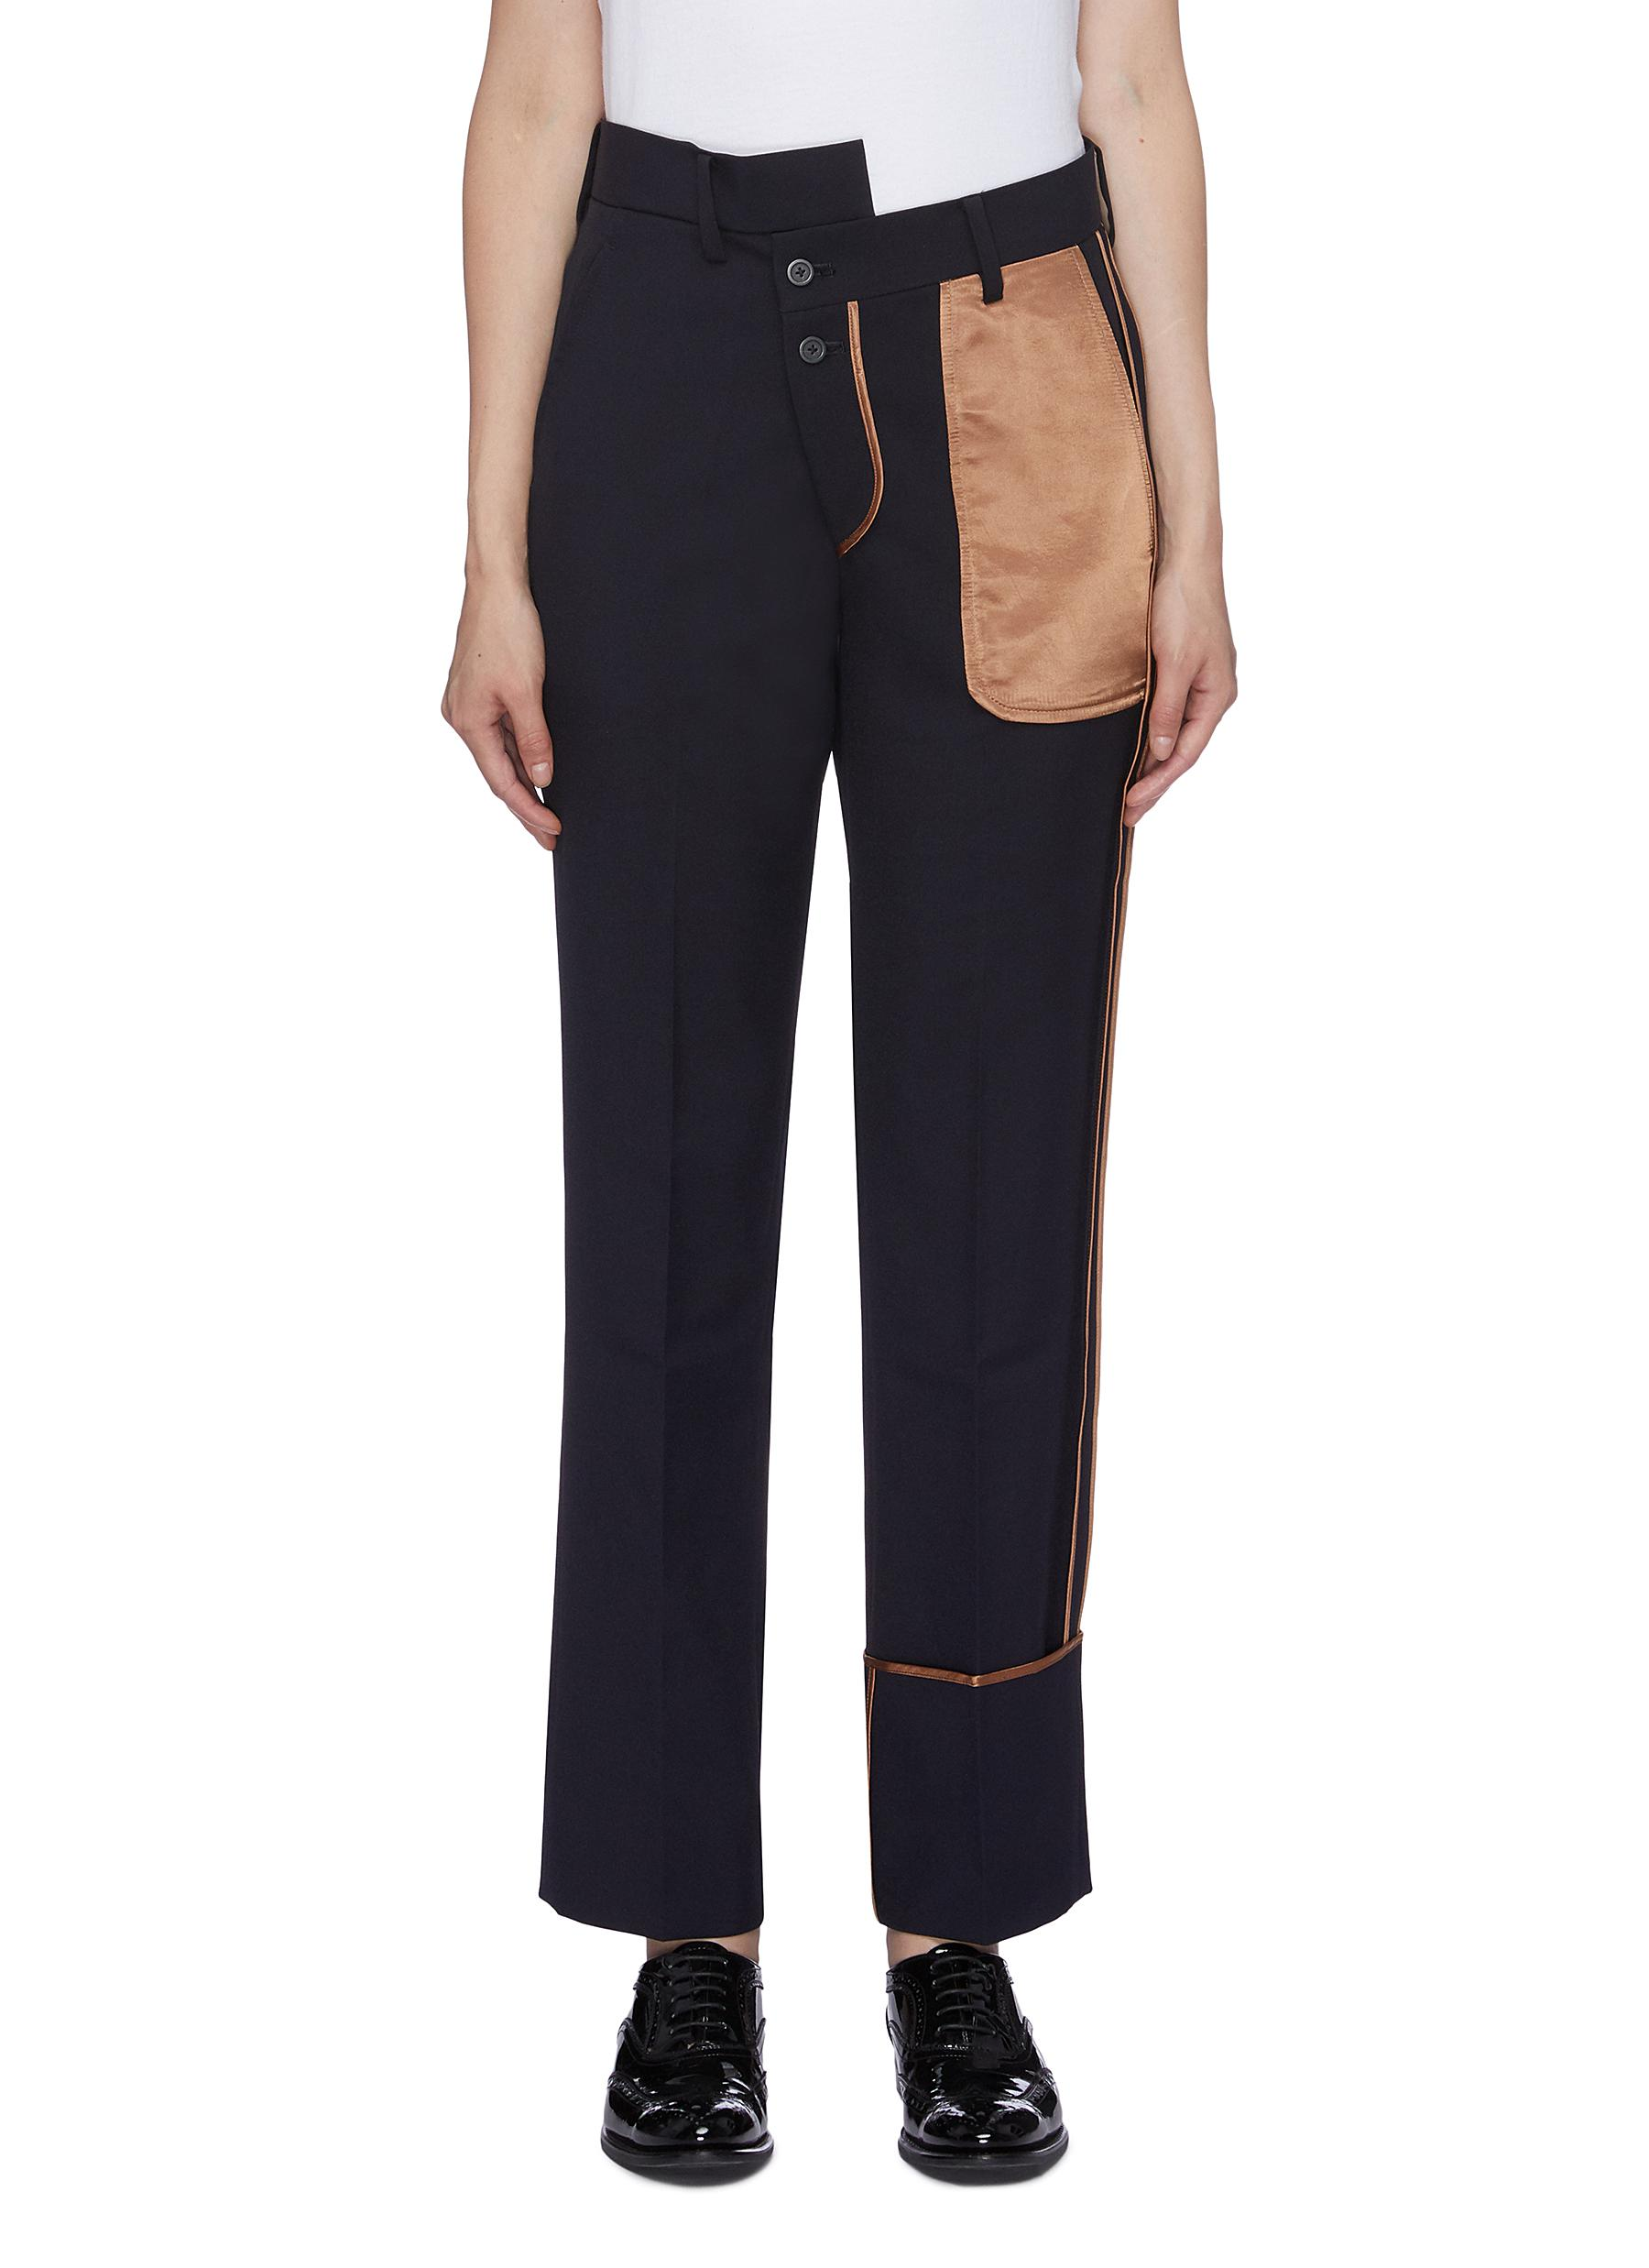 Satin inside-out panel staggered waist pants by The Keiji